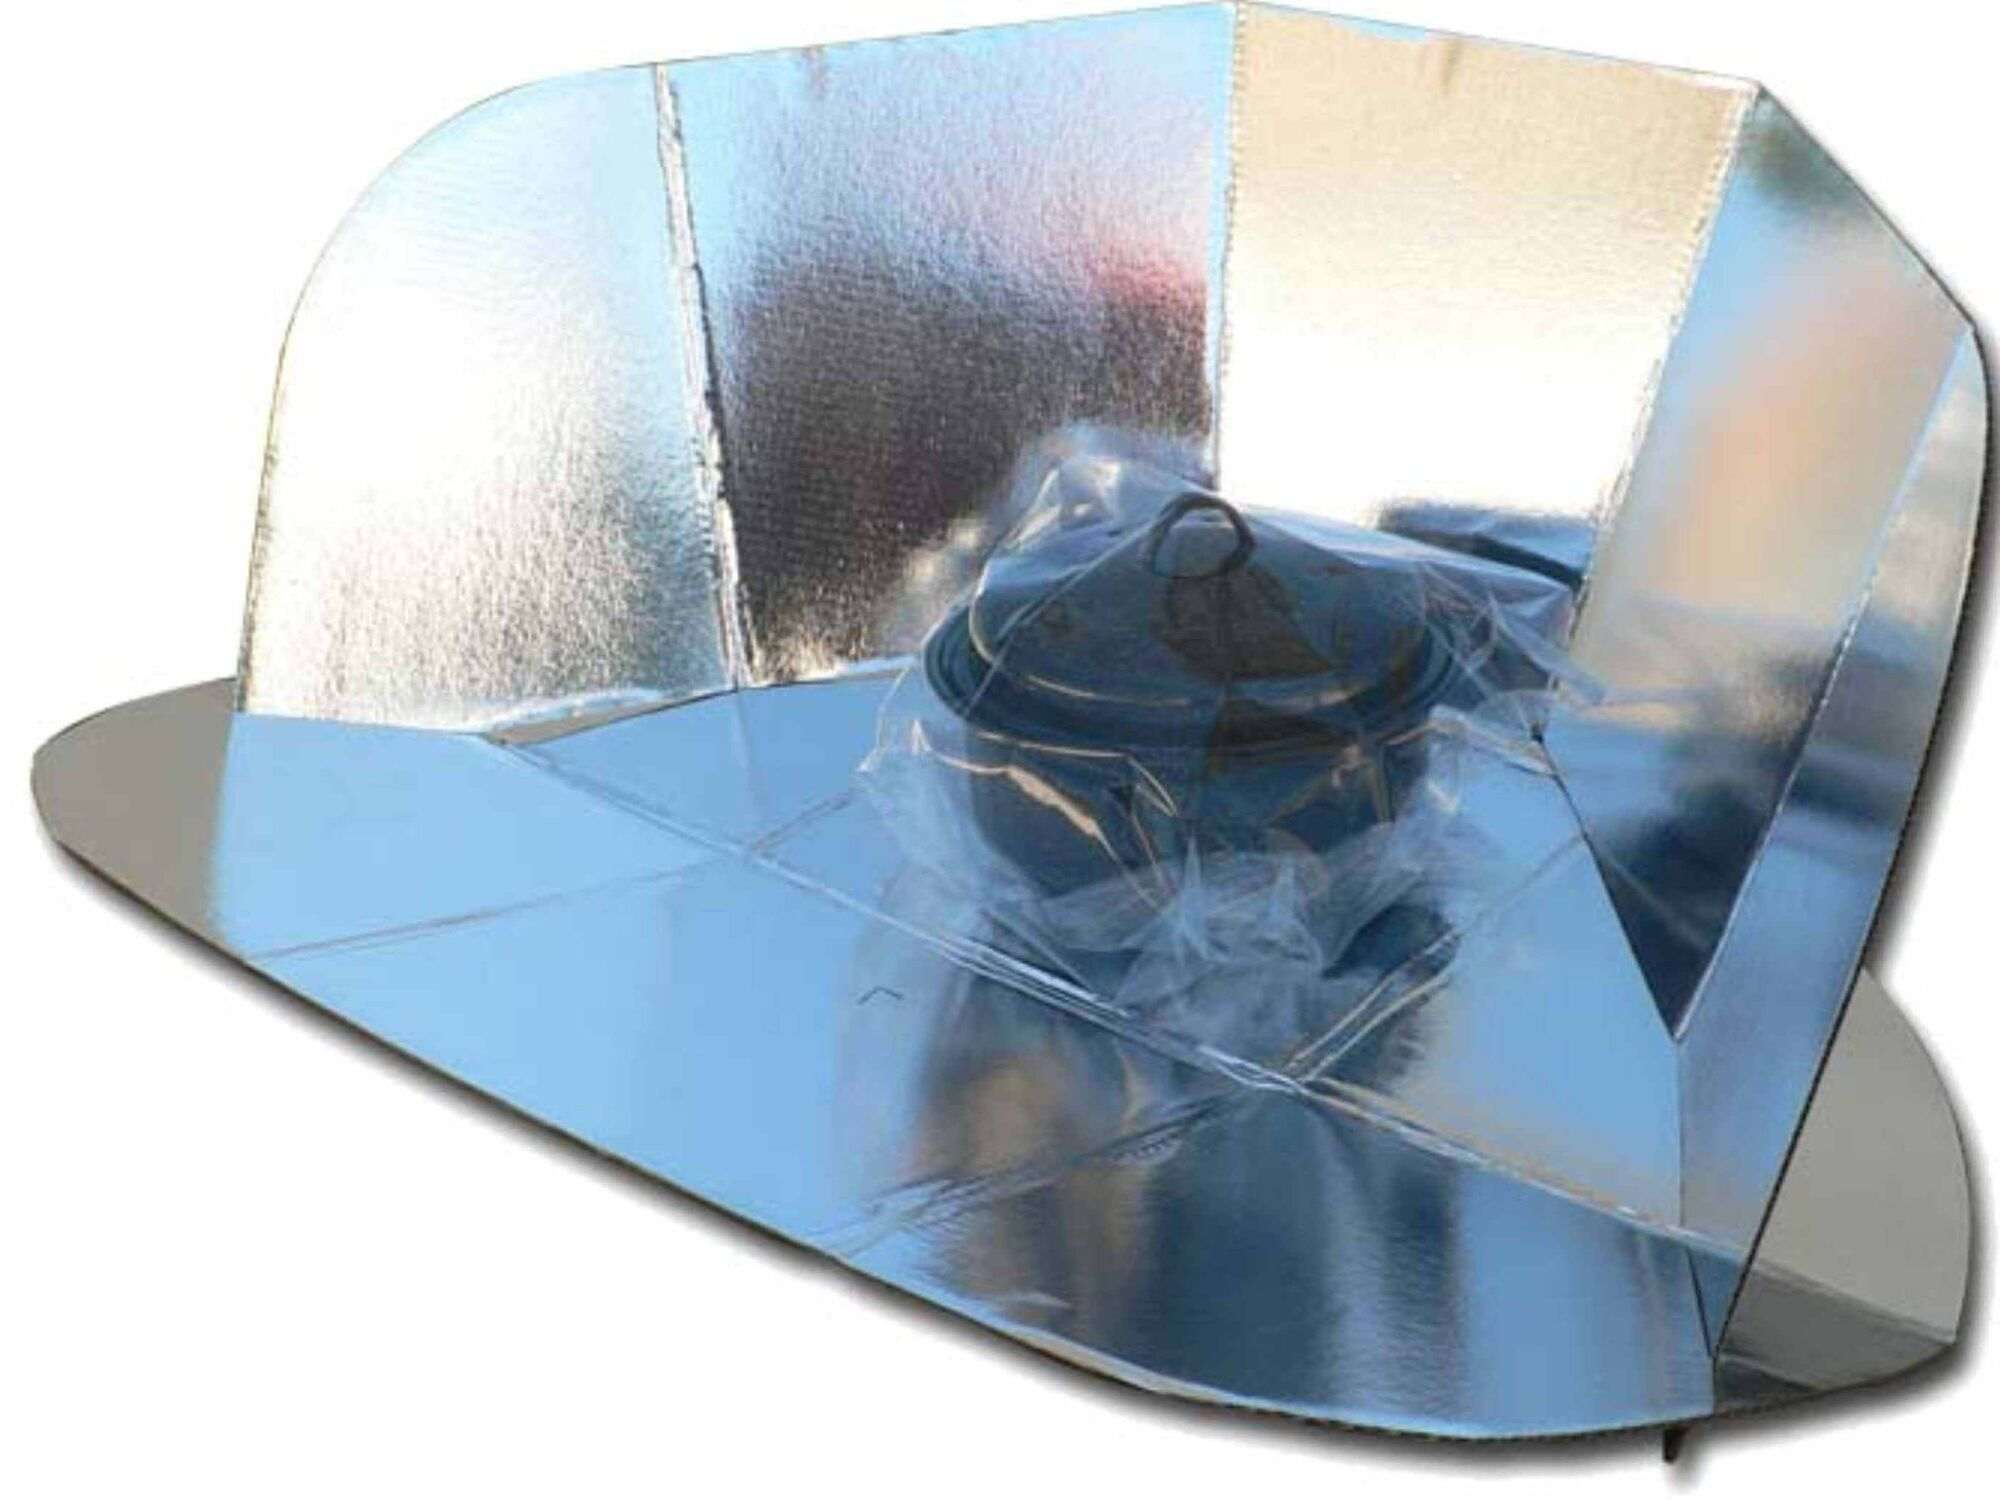 Advantages and Disadvantages of Solar Cooker